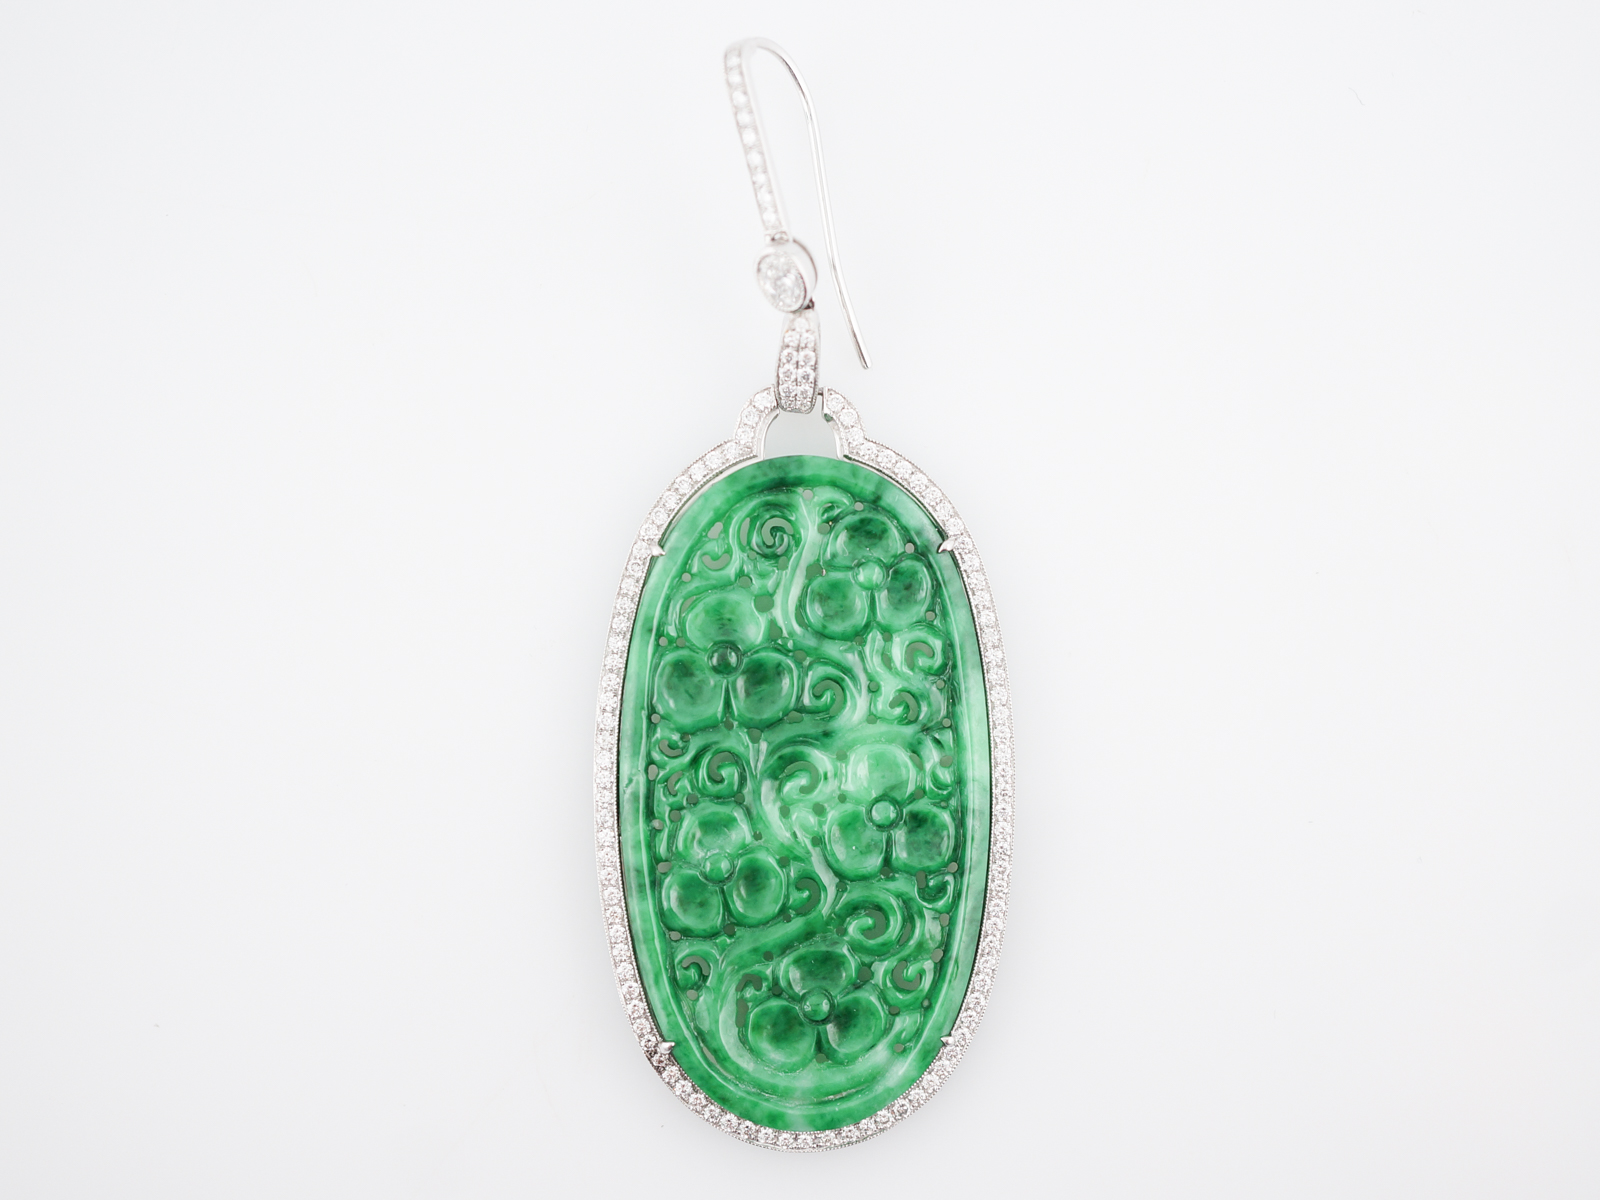 free product jade pendant jewelry carved shipping today watches elephant for gems overstock you